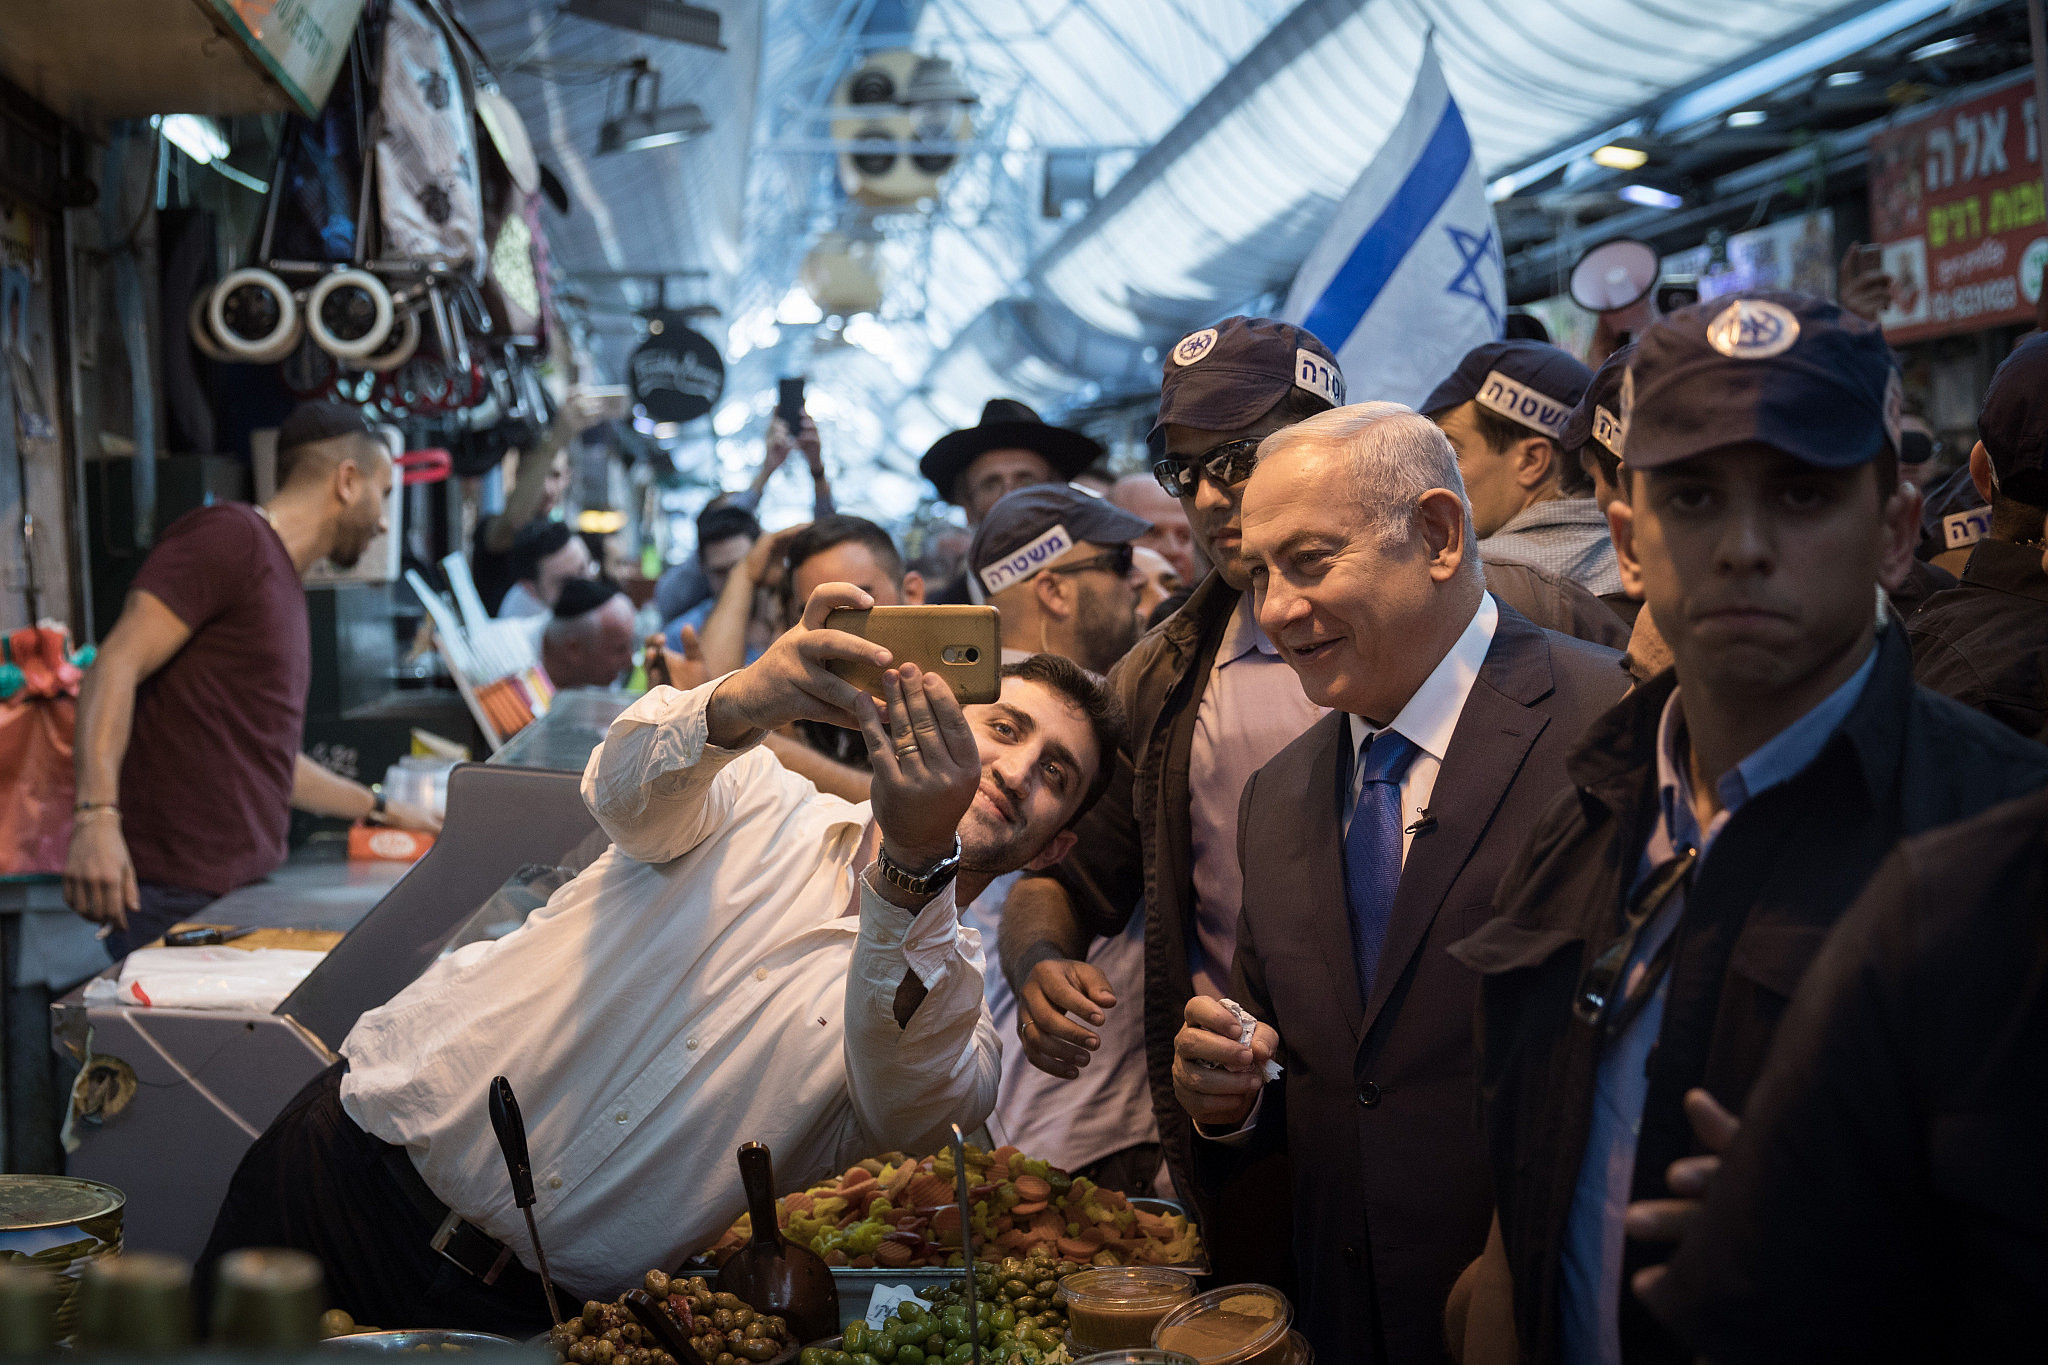 Prime Minister Benjamin Netanyahu visits the Mahane Yehuda Market in Jerusalem along with the Likud party candidate for Jerusalem mayor, Minister Zeev Elkin, ahead of the municipal elections, on October 24, 2018. (Hadas Parush/Flash90)